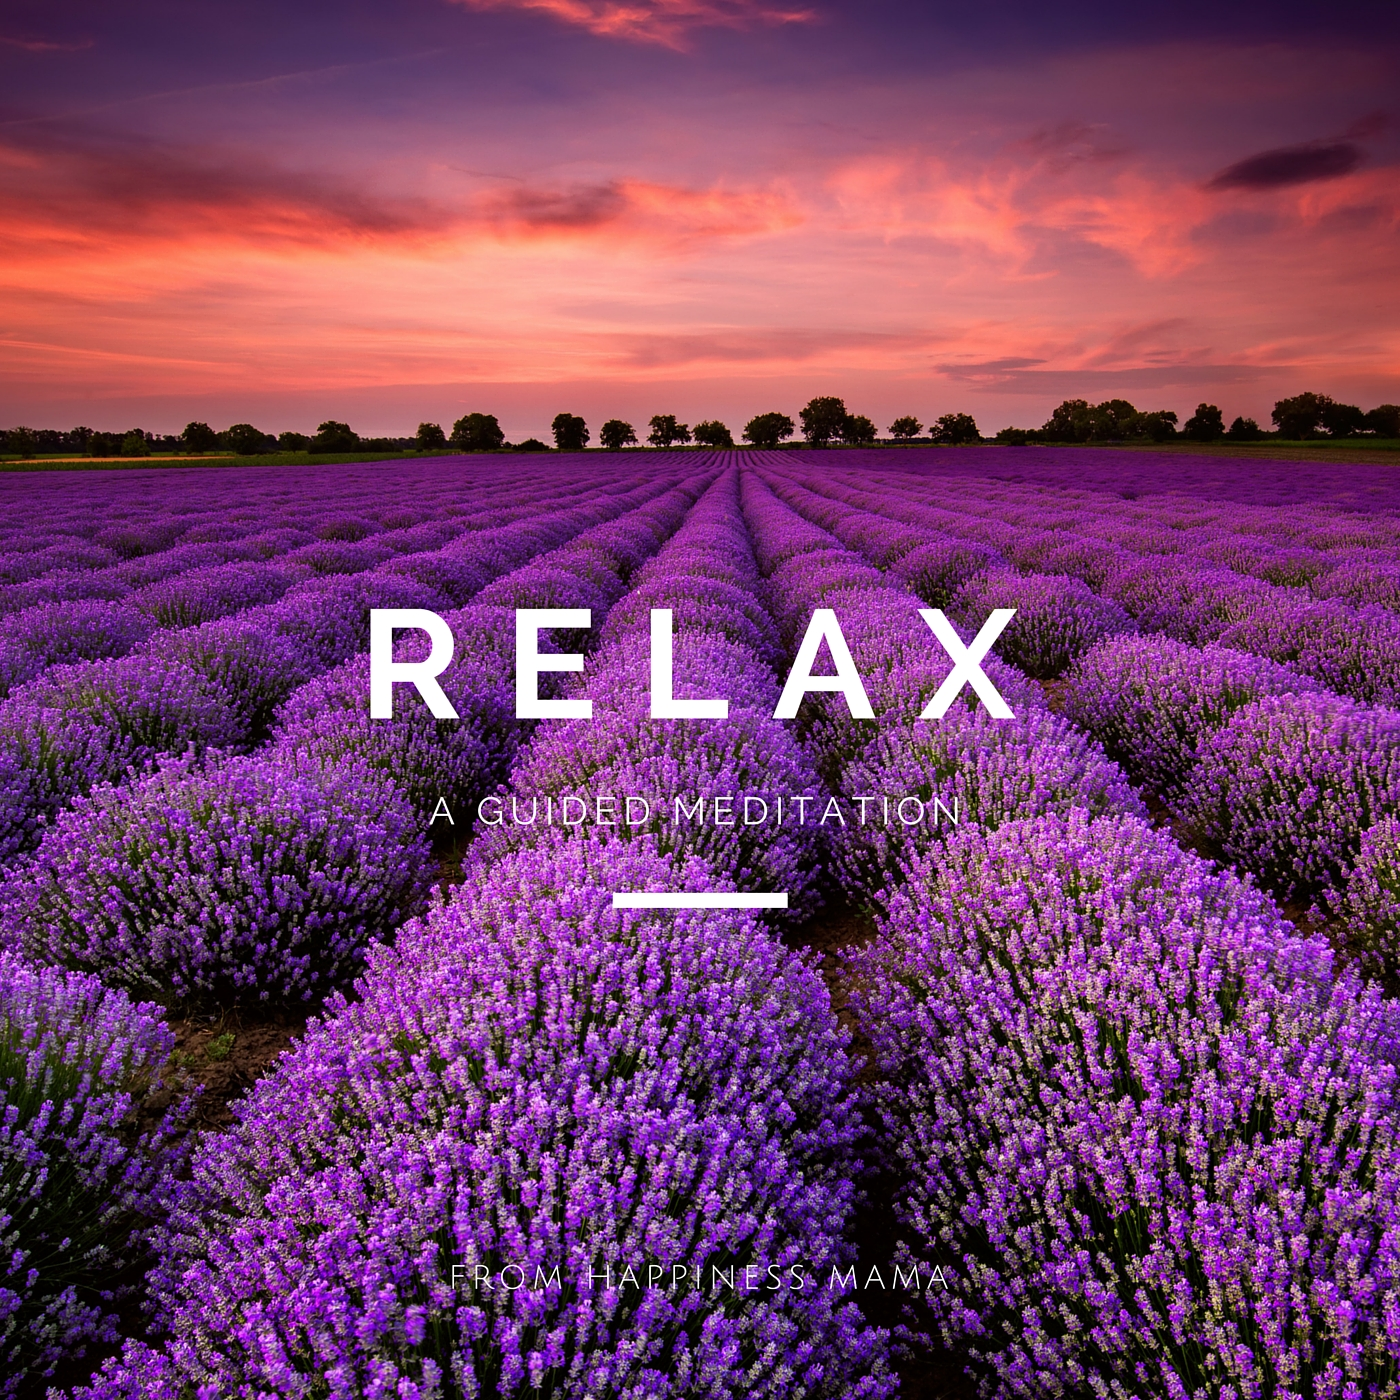 Relax Guided Meditation from Happiness Mama